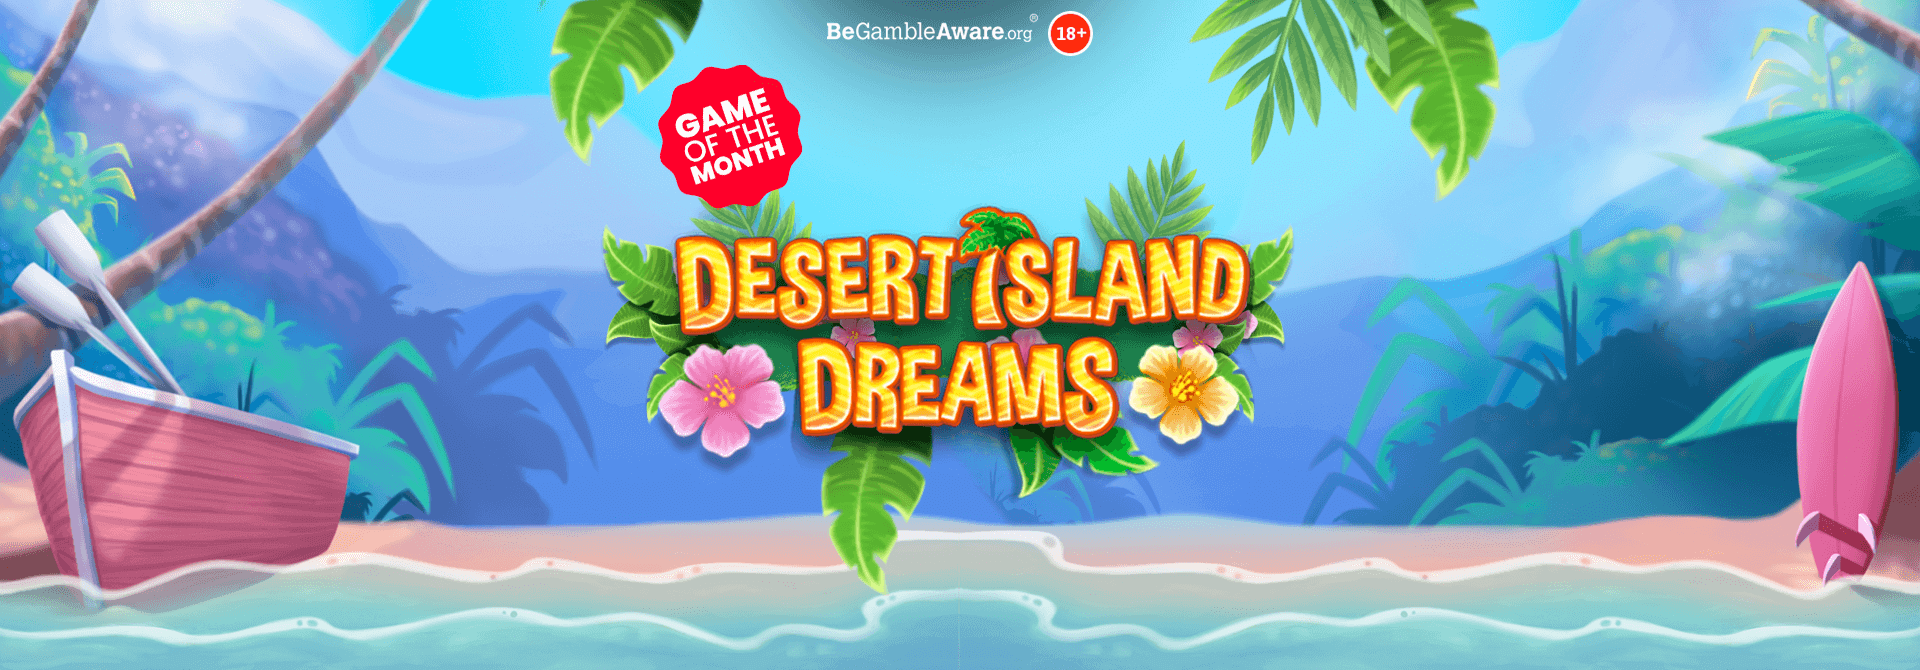 It's time to put your feet up and relax on Desert Island Dreams